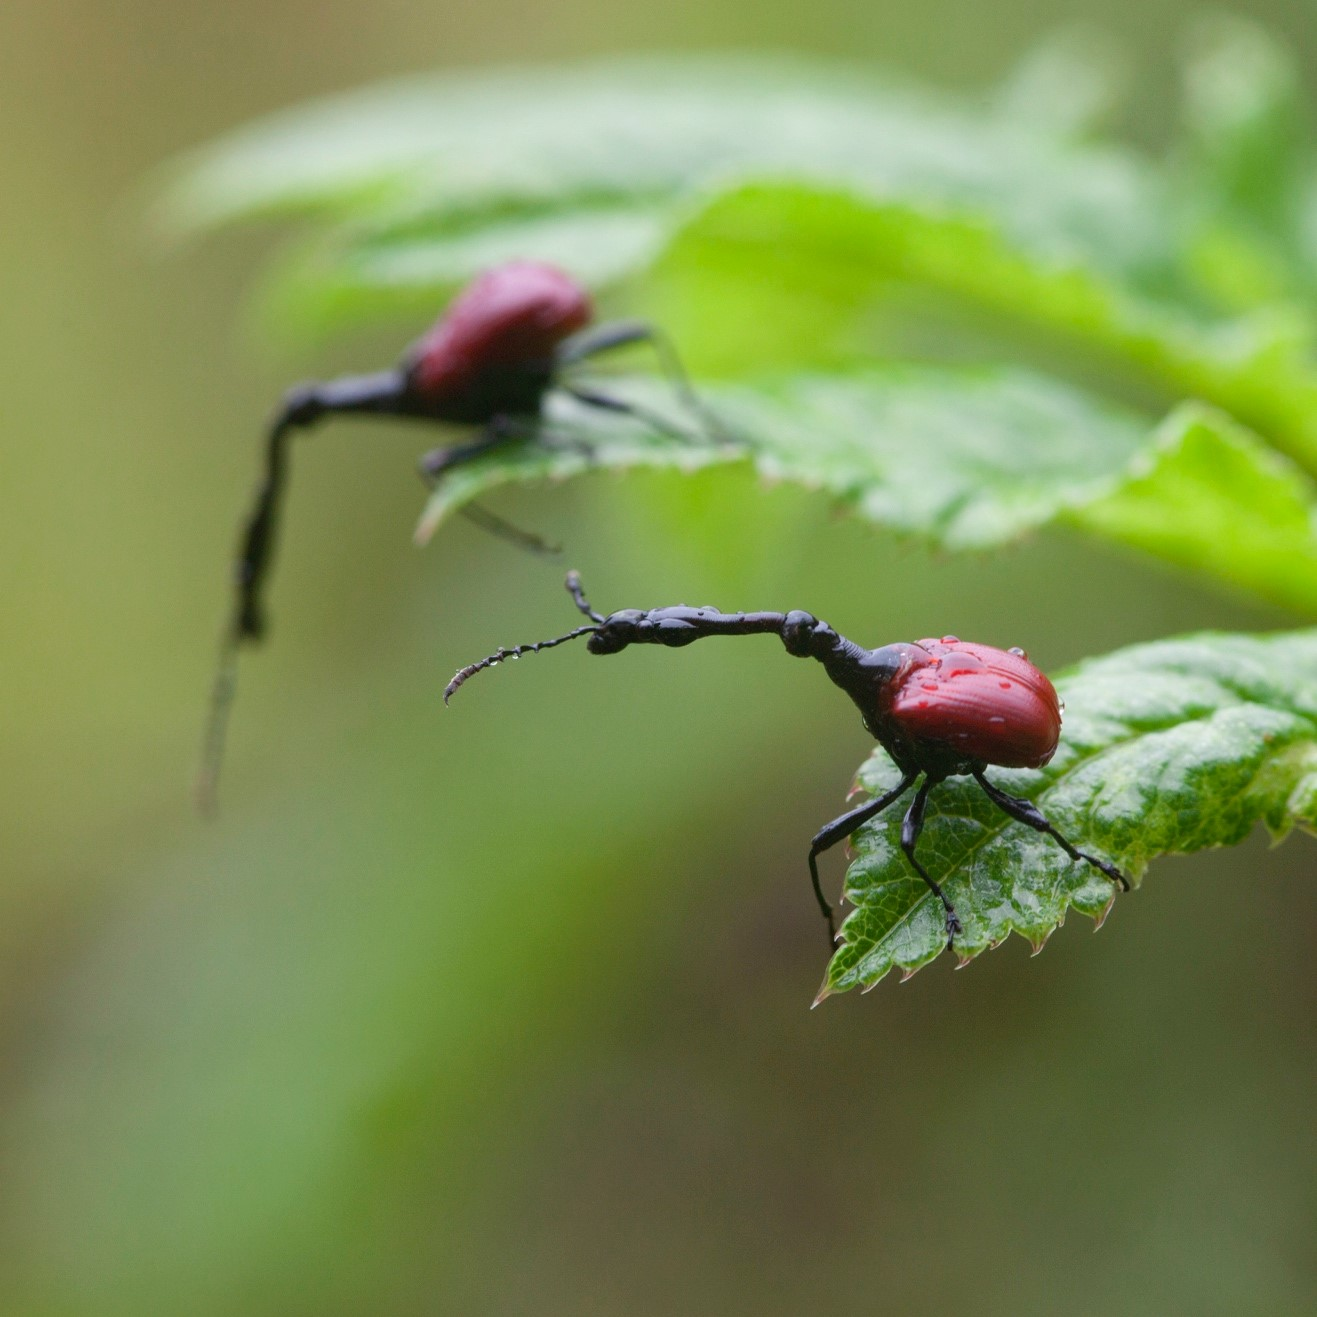 two male giraffe necked weevils on the tips of leaves about to battle